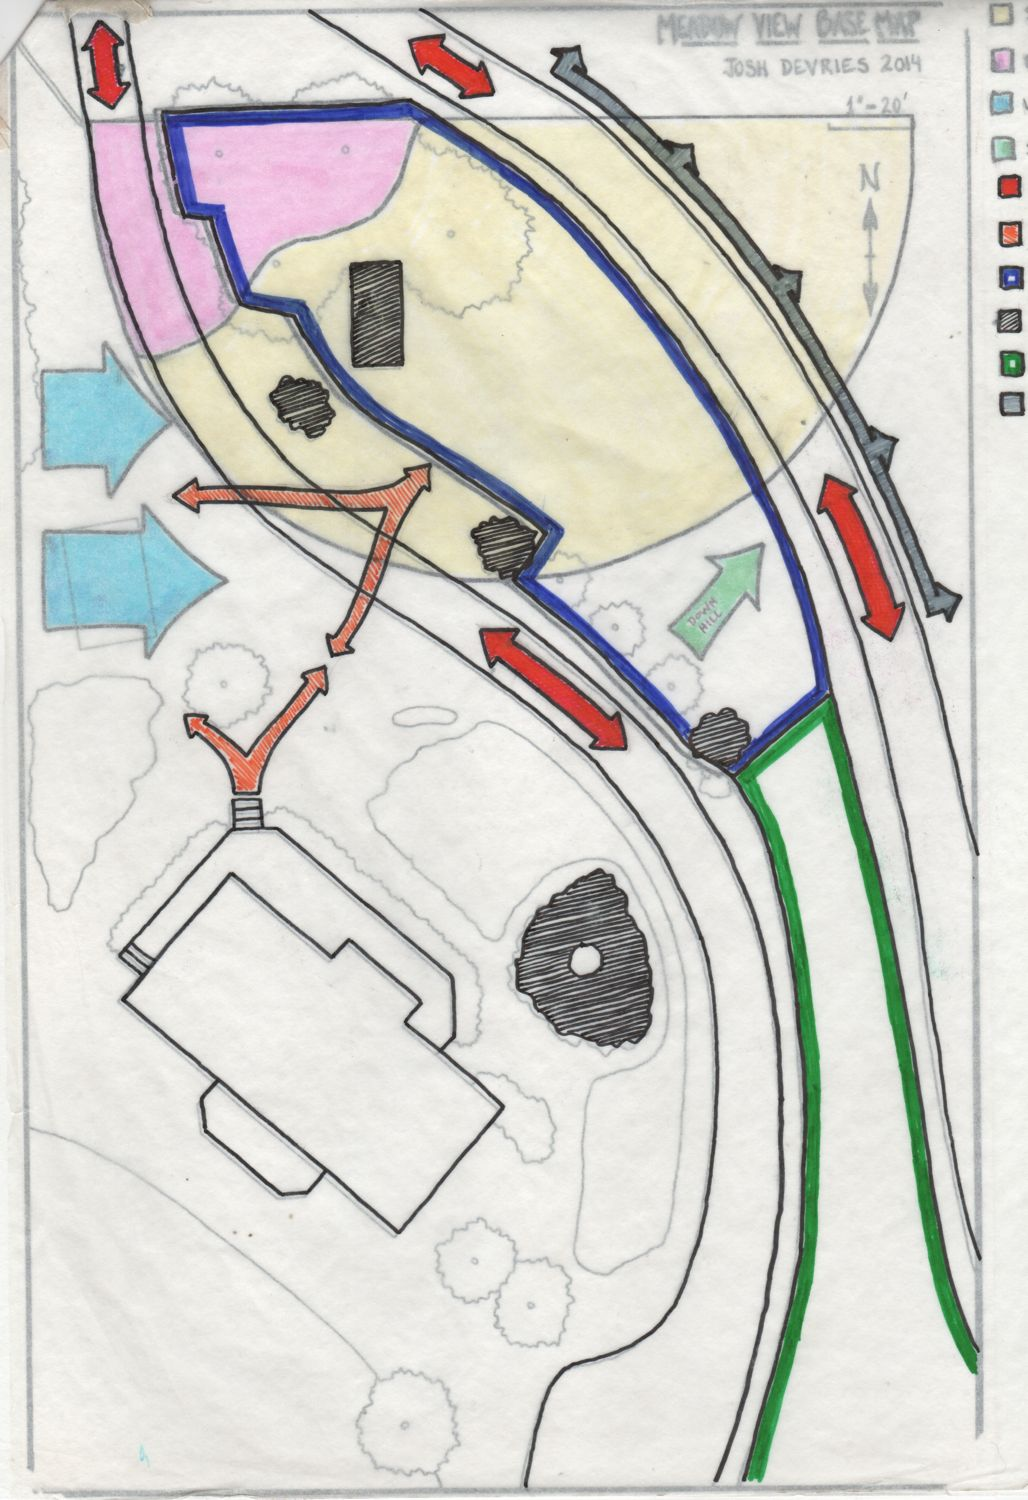 Computers can greatly speed up the design process, but sometimes drawing things by hand   gives a different perspective, and we have to admit the old school appeal is a factor. This is a sector overlay of a site base map traced from google earth, created to analyze influences of things like human traffic, prevailing winds, vehicle traffic, and sun course and consider them in the layout of the site. This is one of many useful design tools originating from permaculture teachings.